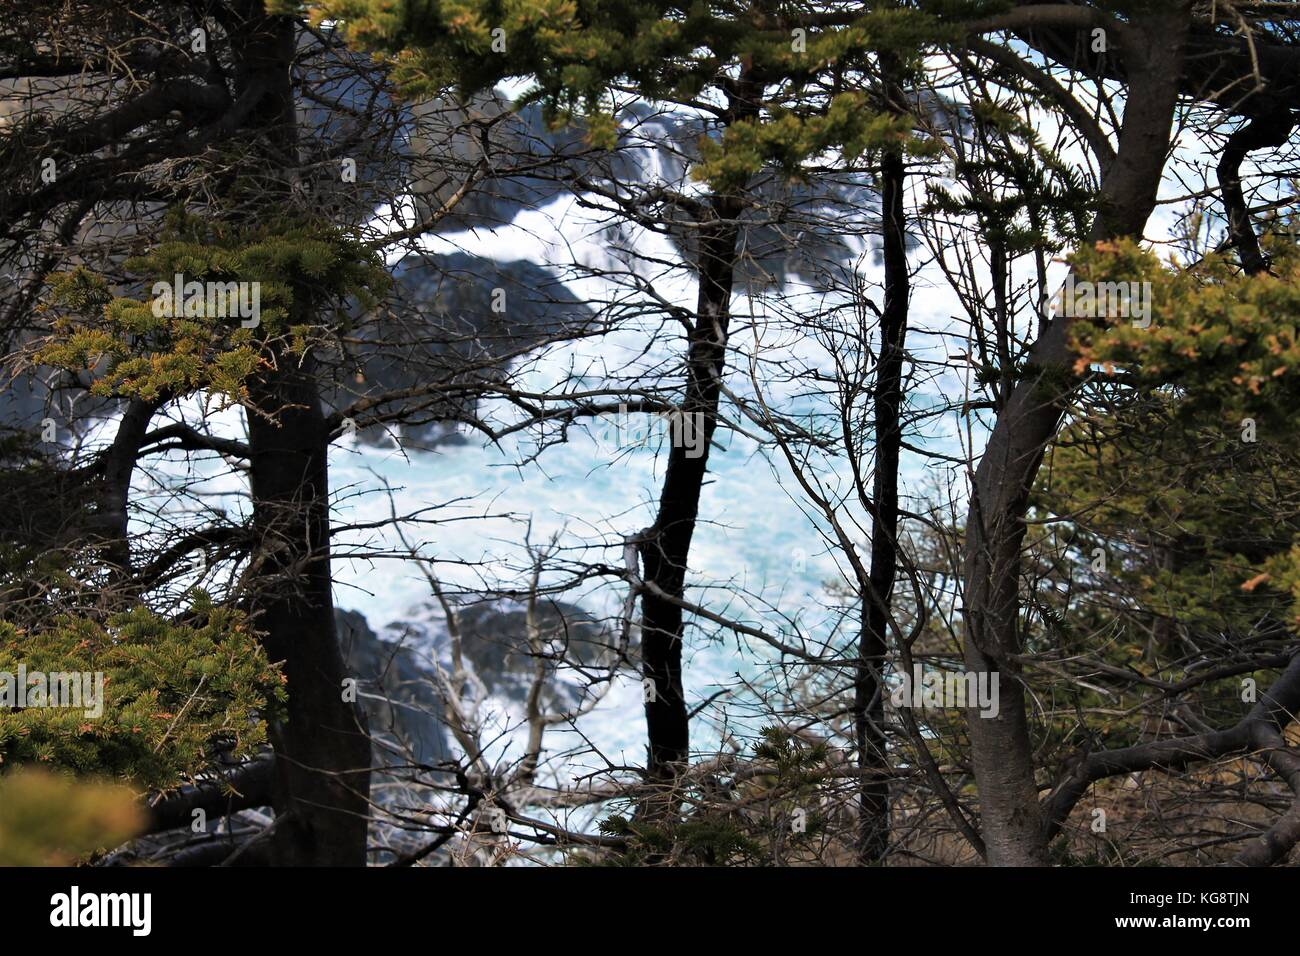 Surf and breaking waves viewed through the trees, Logy Bay-Middle Cove-Outer Cove, Newfoundland and Labrador, Canada. - Stock Image